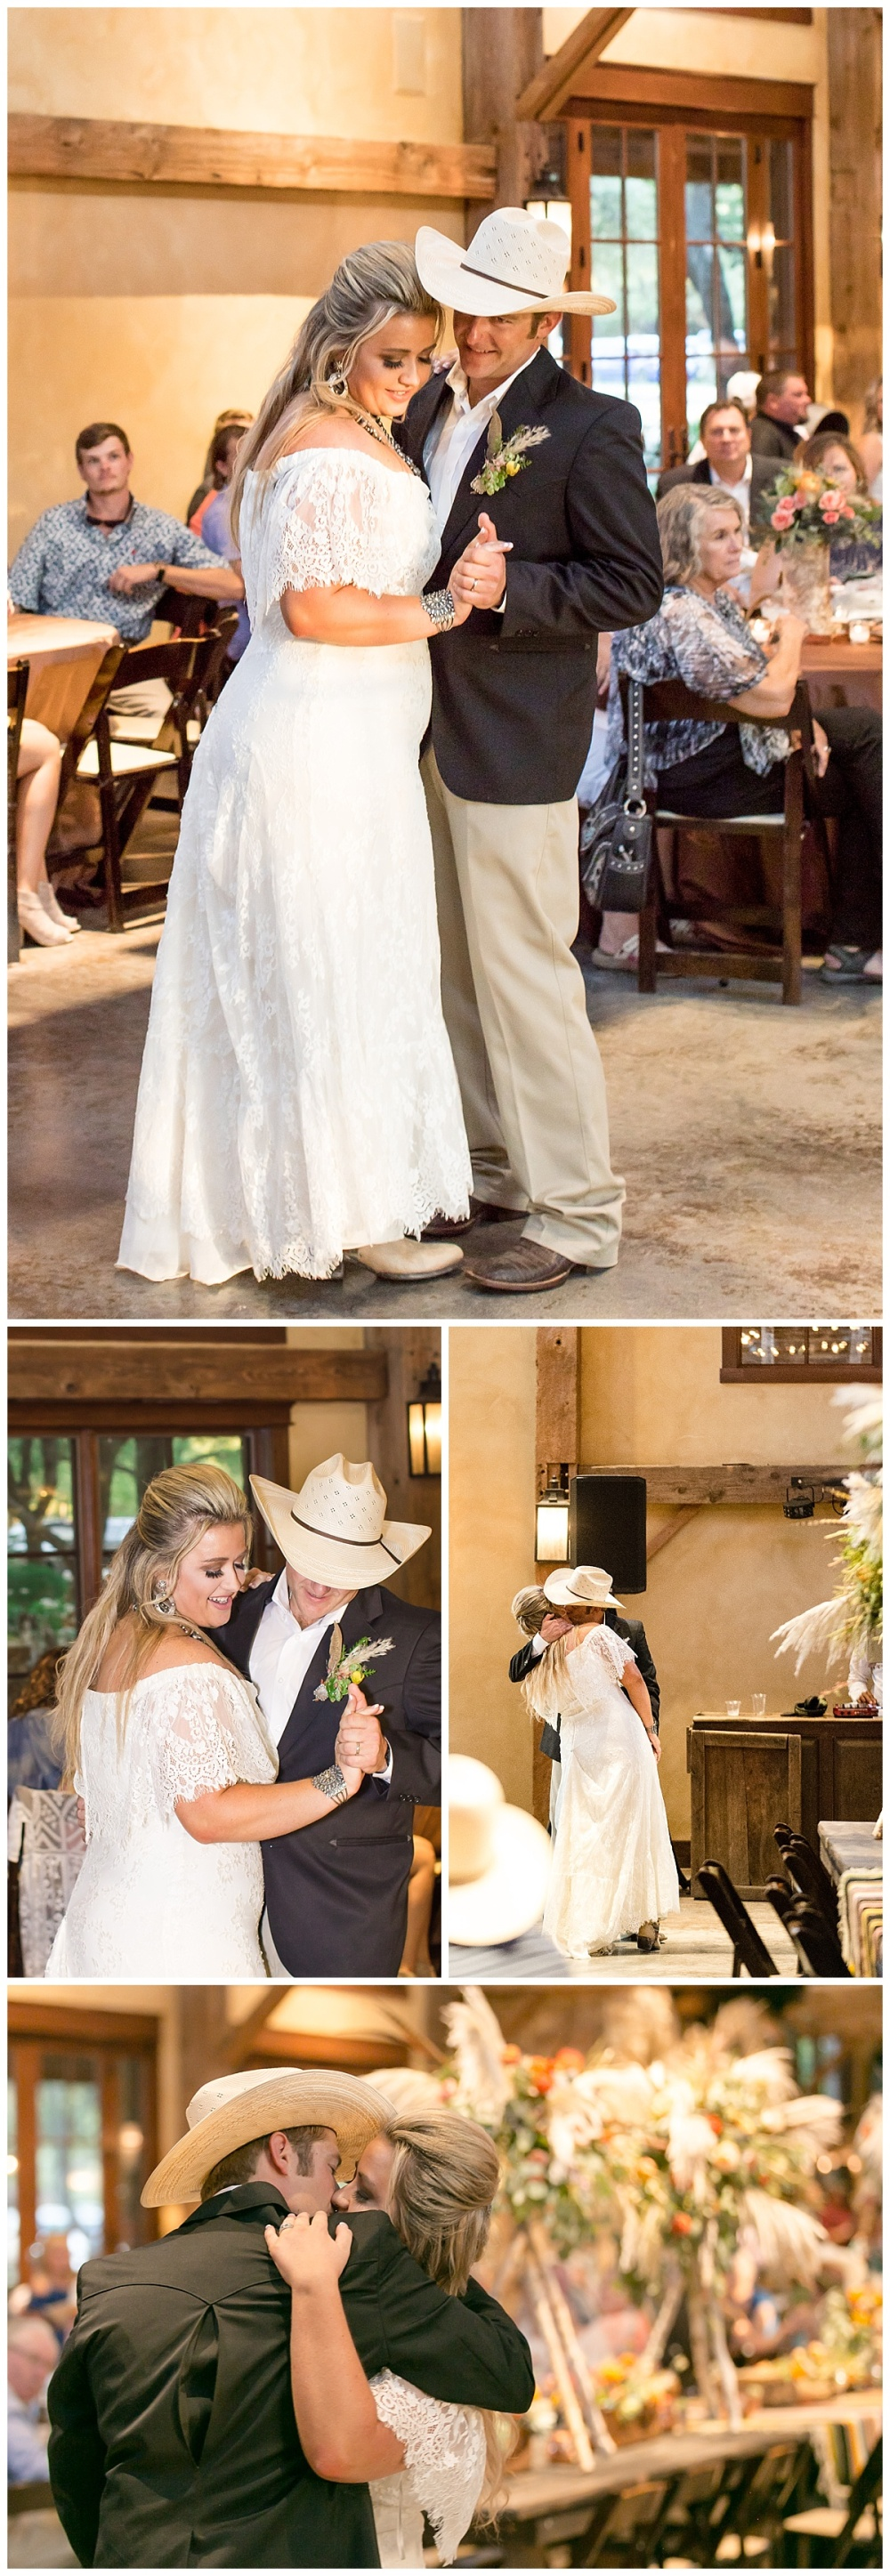 Texas-Wedding-Photographer-Braded-T-Ranch-Kendalia-Bride-Groom-Southwestern-Style-Carly-Barton-Photography-Vogt_0049.jpg